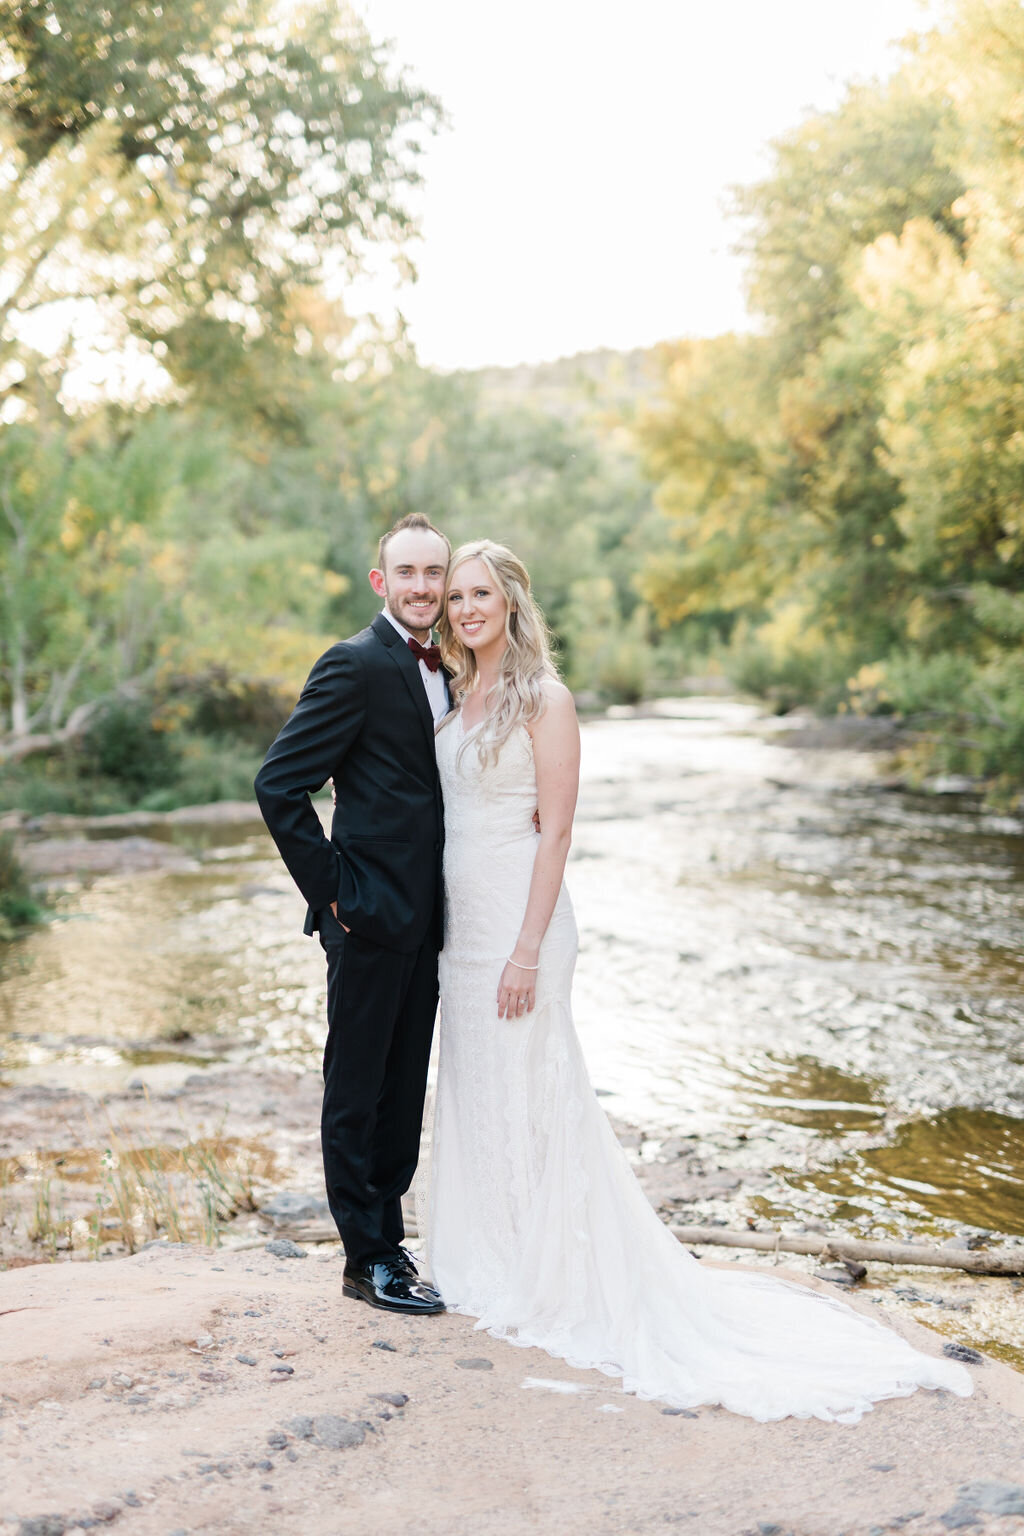 Courtney+Michael-Wedding-209